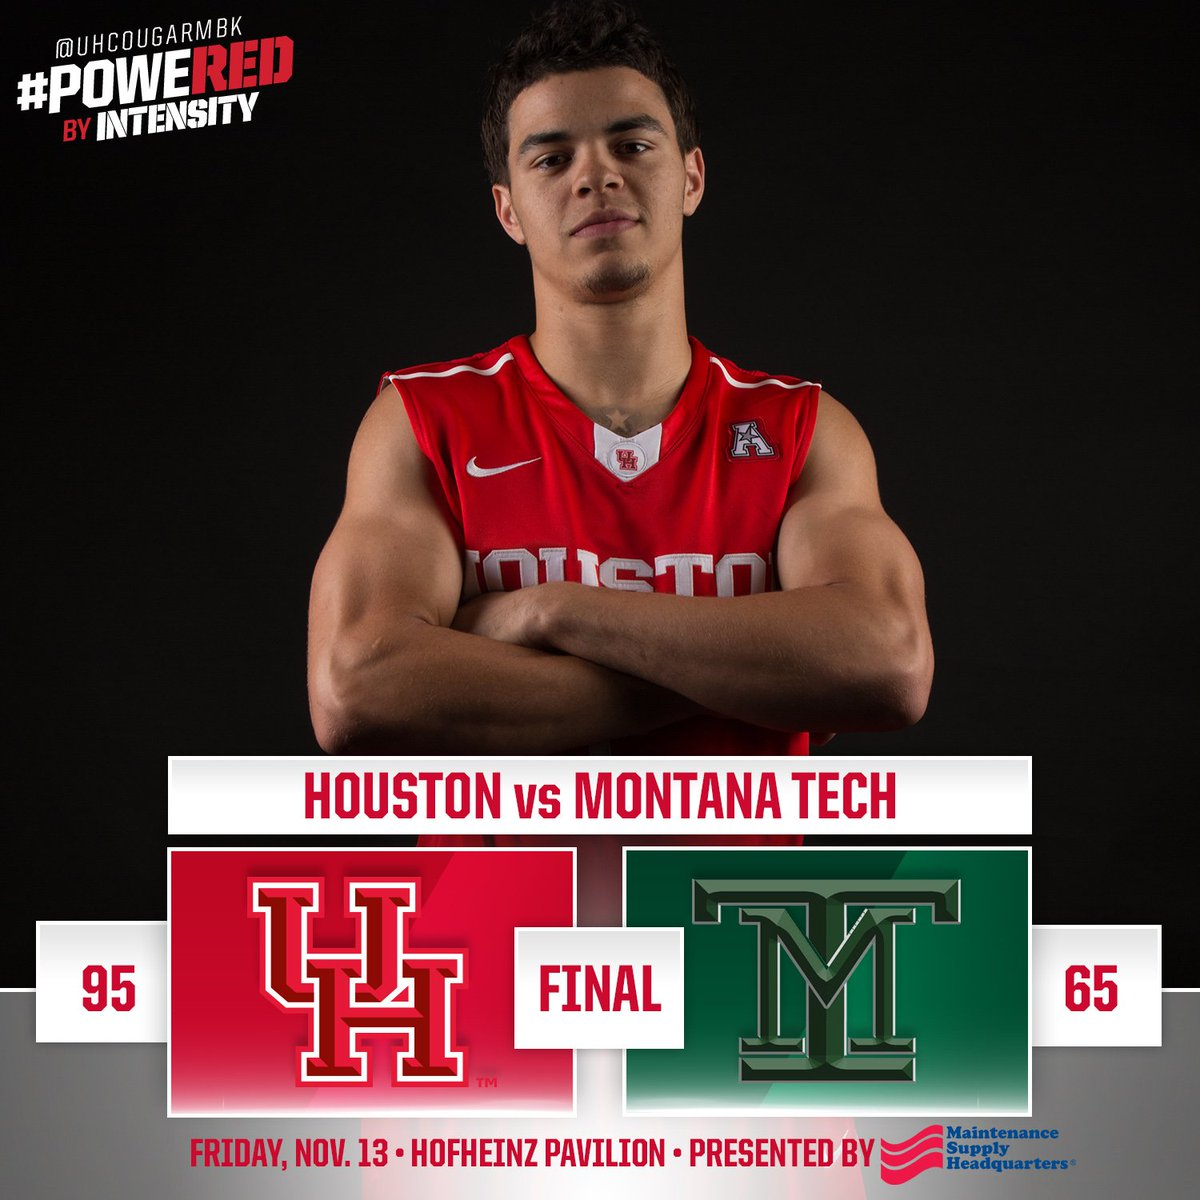 FINAL Houston 95, Montana Tech 65 Rob Gray Jr leads Coogs with 15 pts in